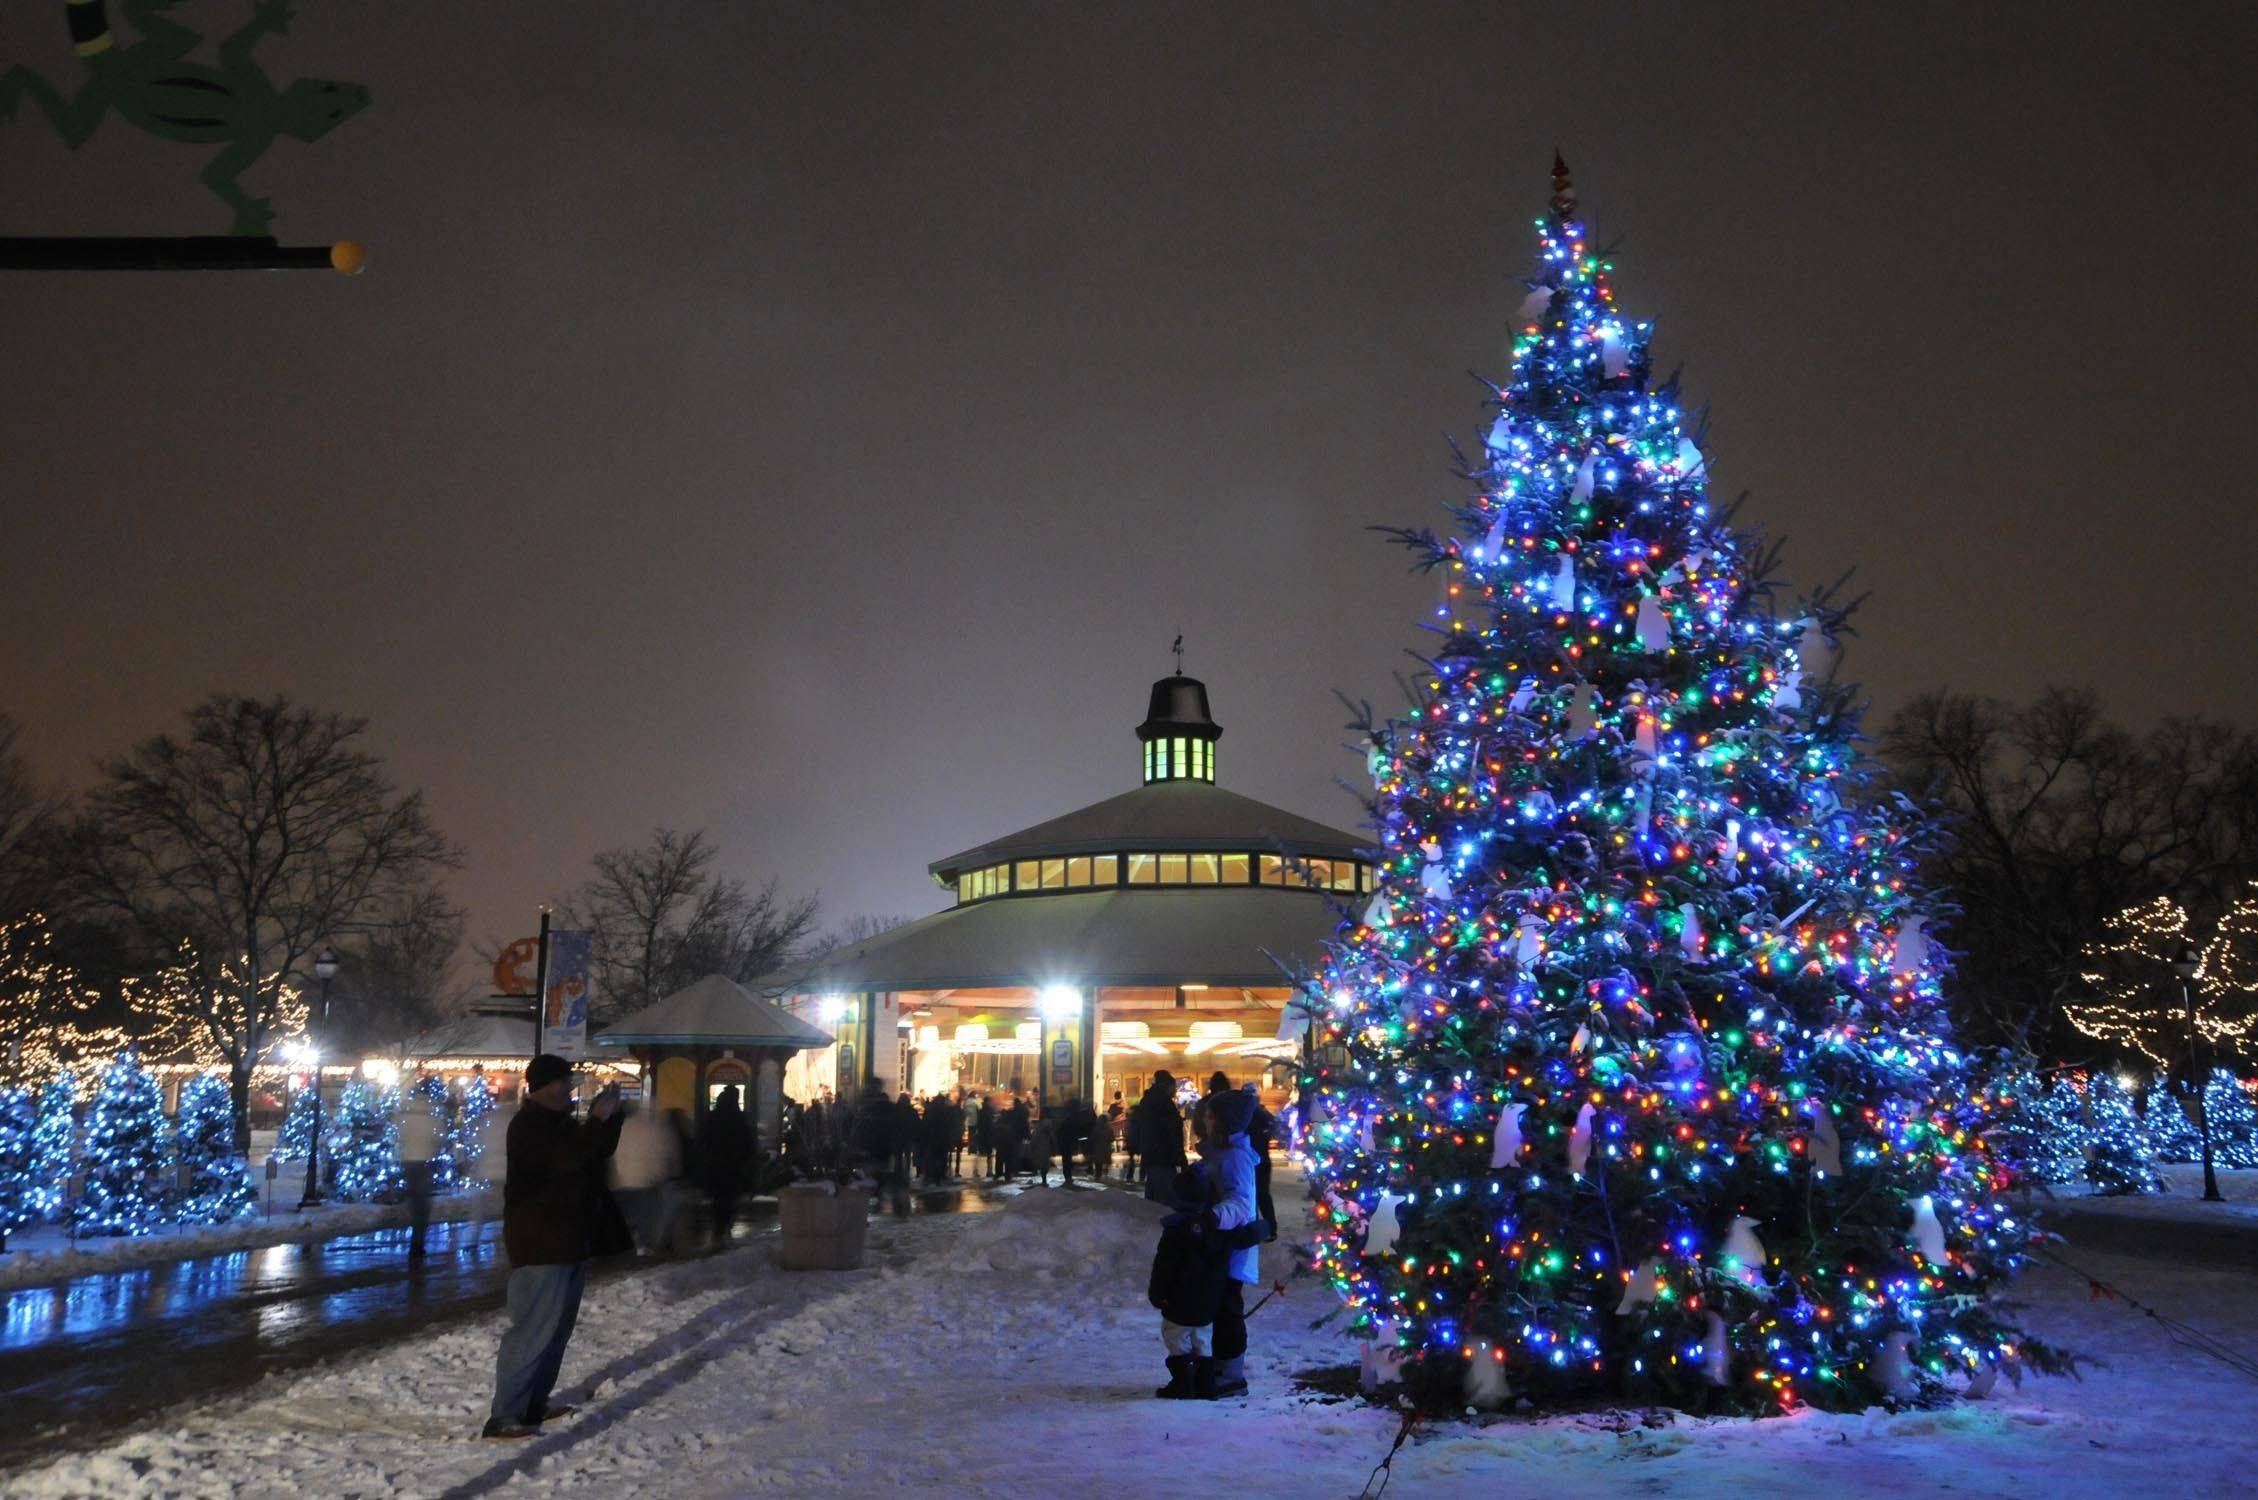 Millions of colorful lights will brighten the night during the annual Holiday Magic celebration at Brookfield Zoo.